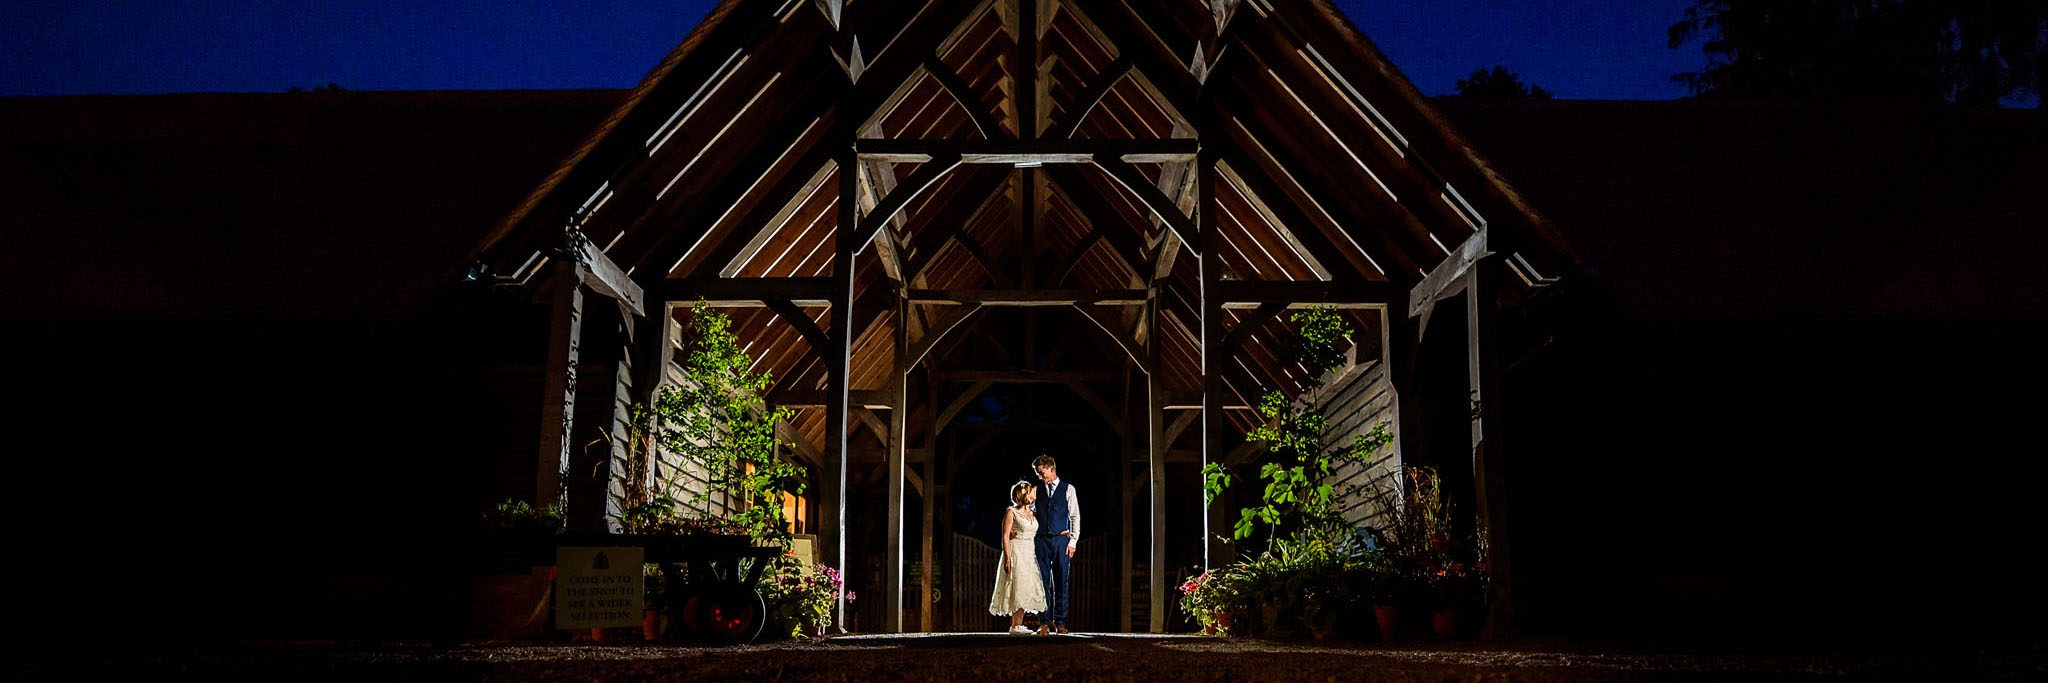 evening photo of the happy couple at knebworth barns